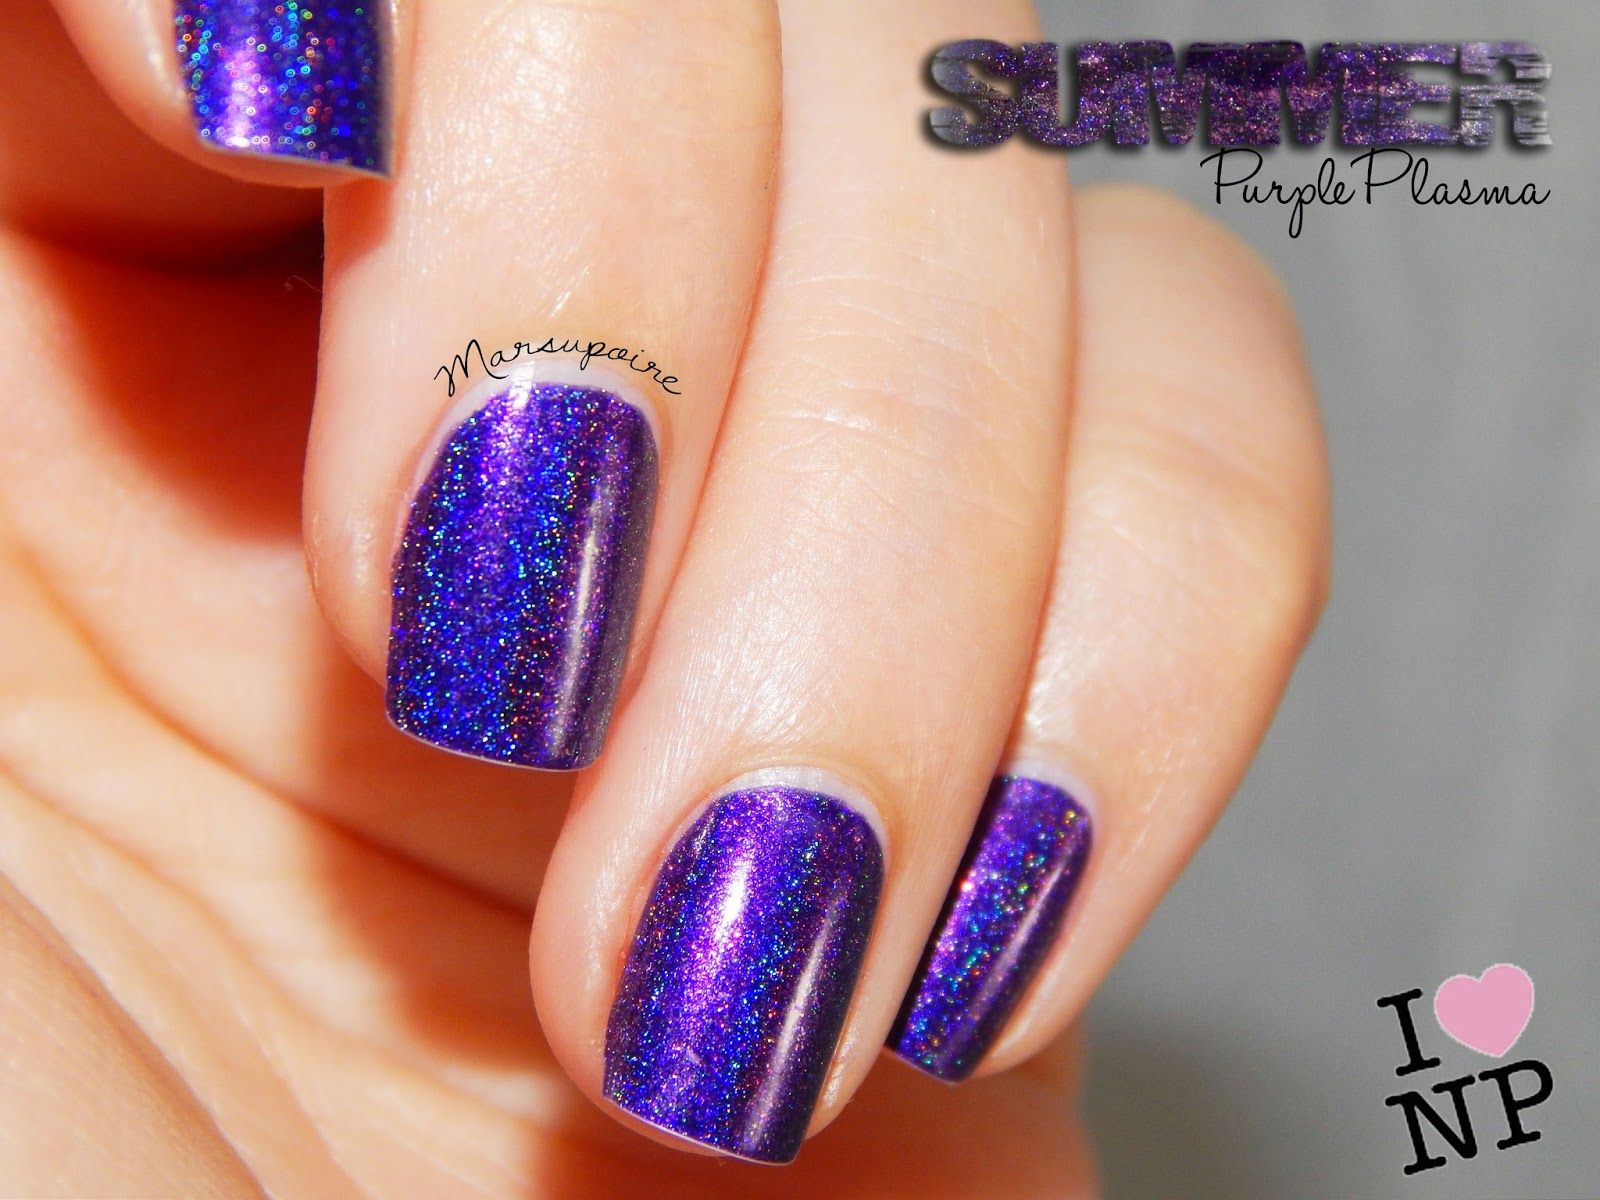 Vernis_ILNP_purple plasma_flash